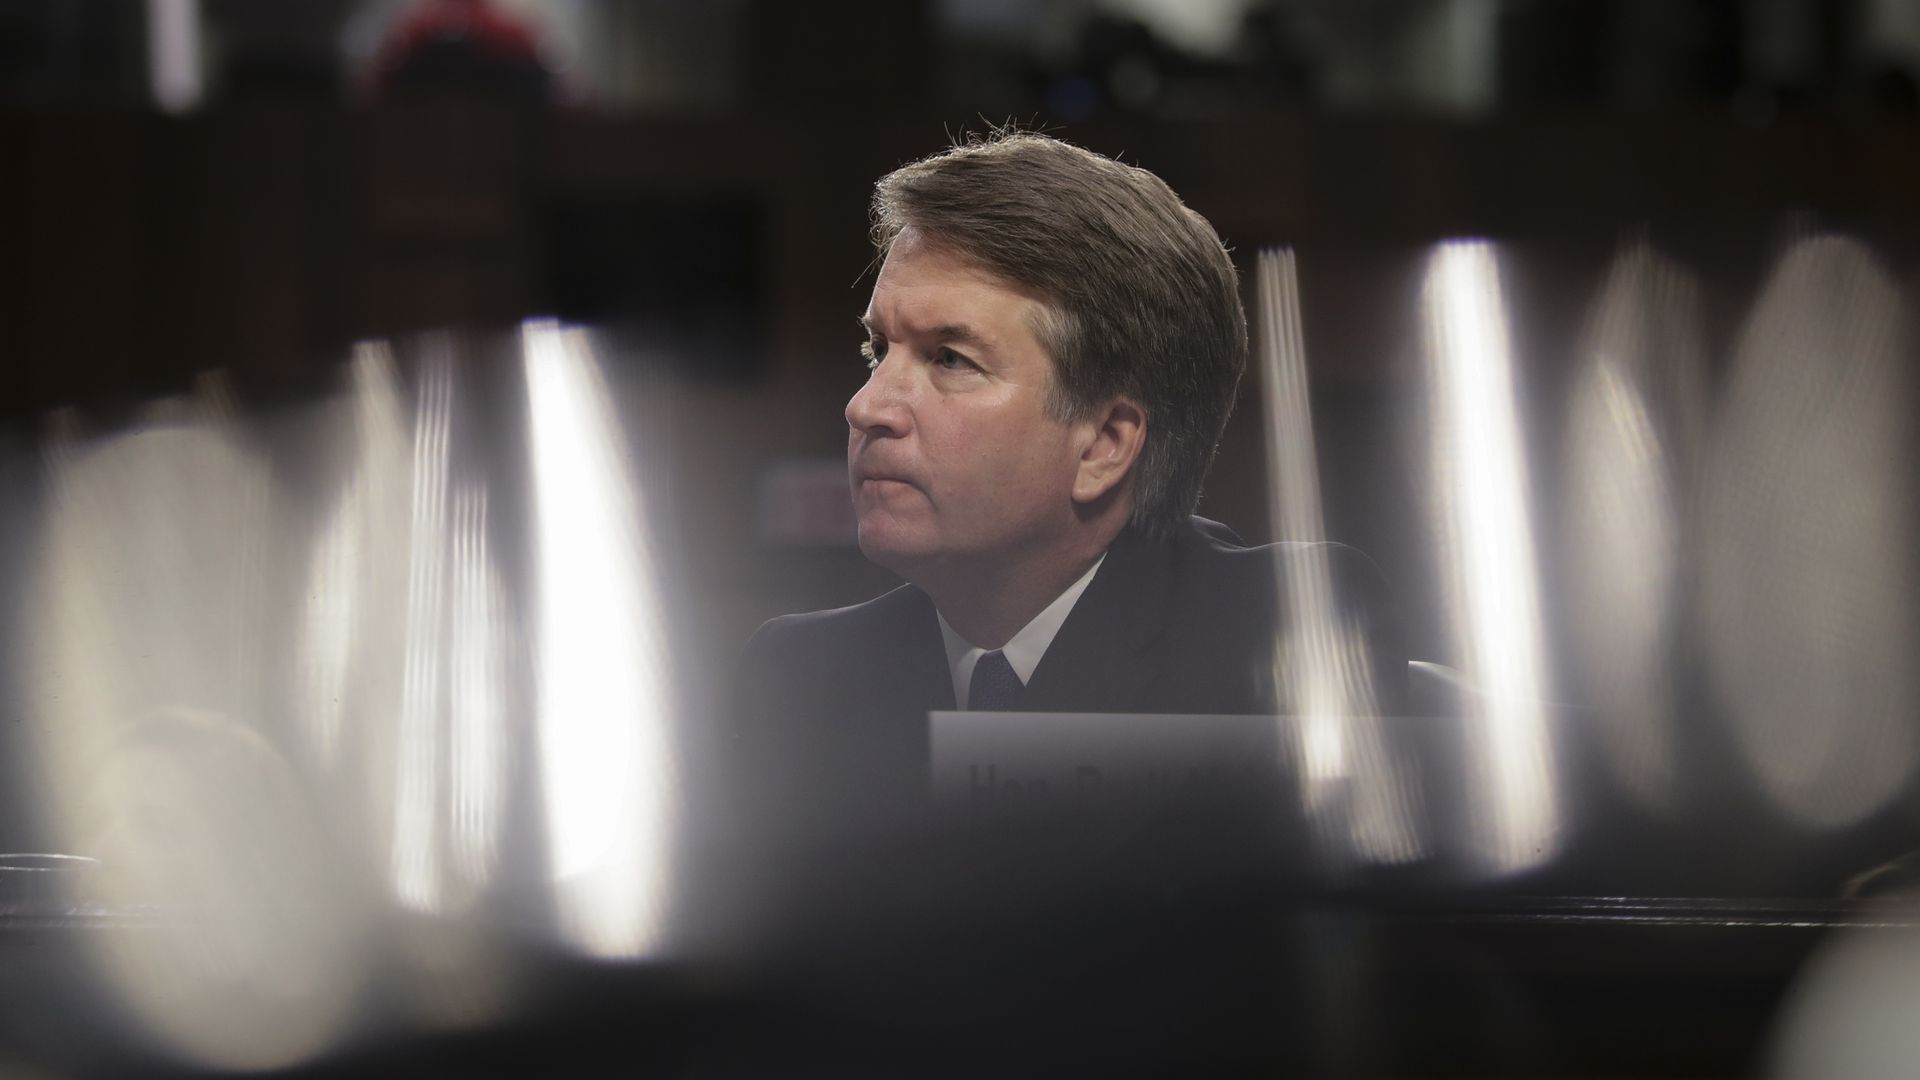 Supreme Court nominee Judge Brett Kavanaug. Photo: Drew Angerer/Getty Images